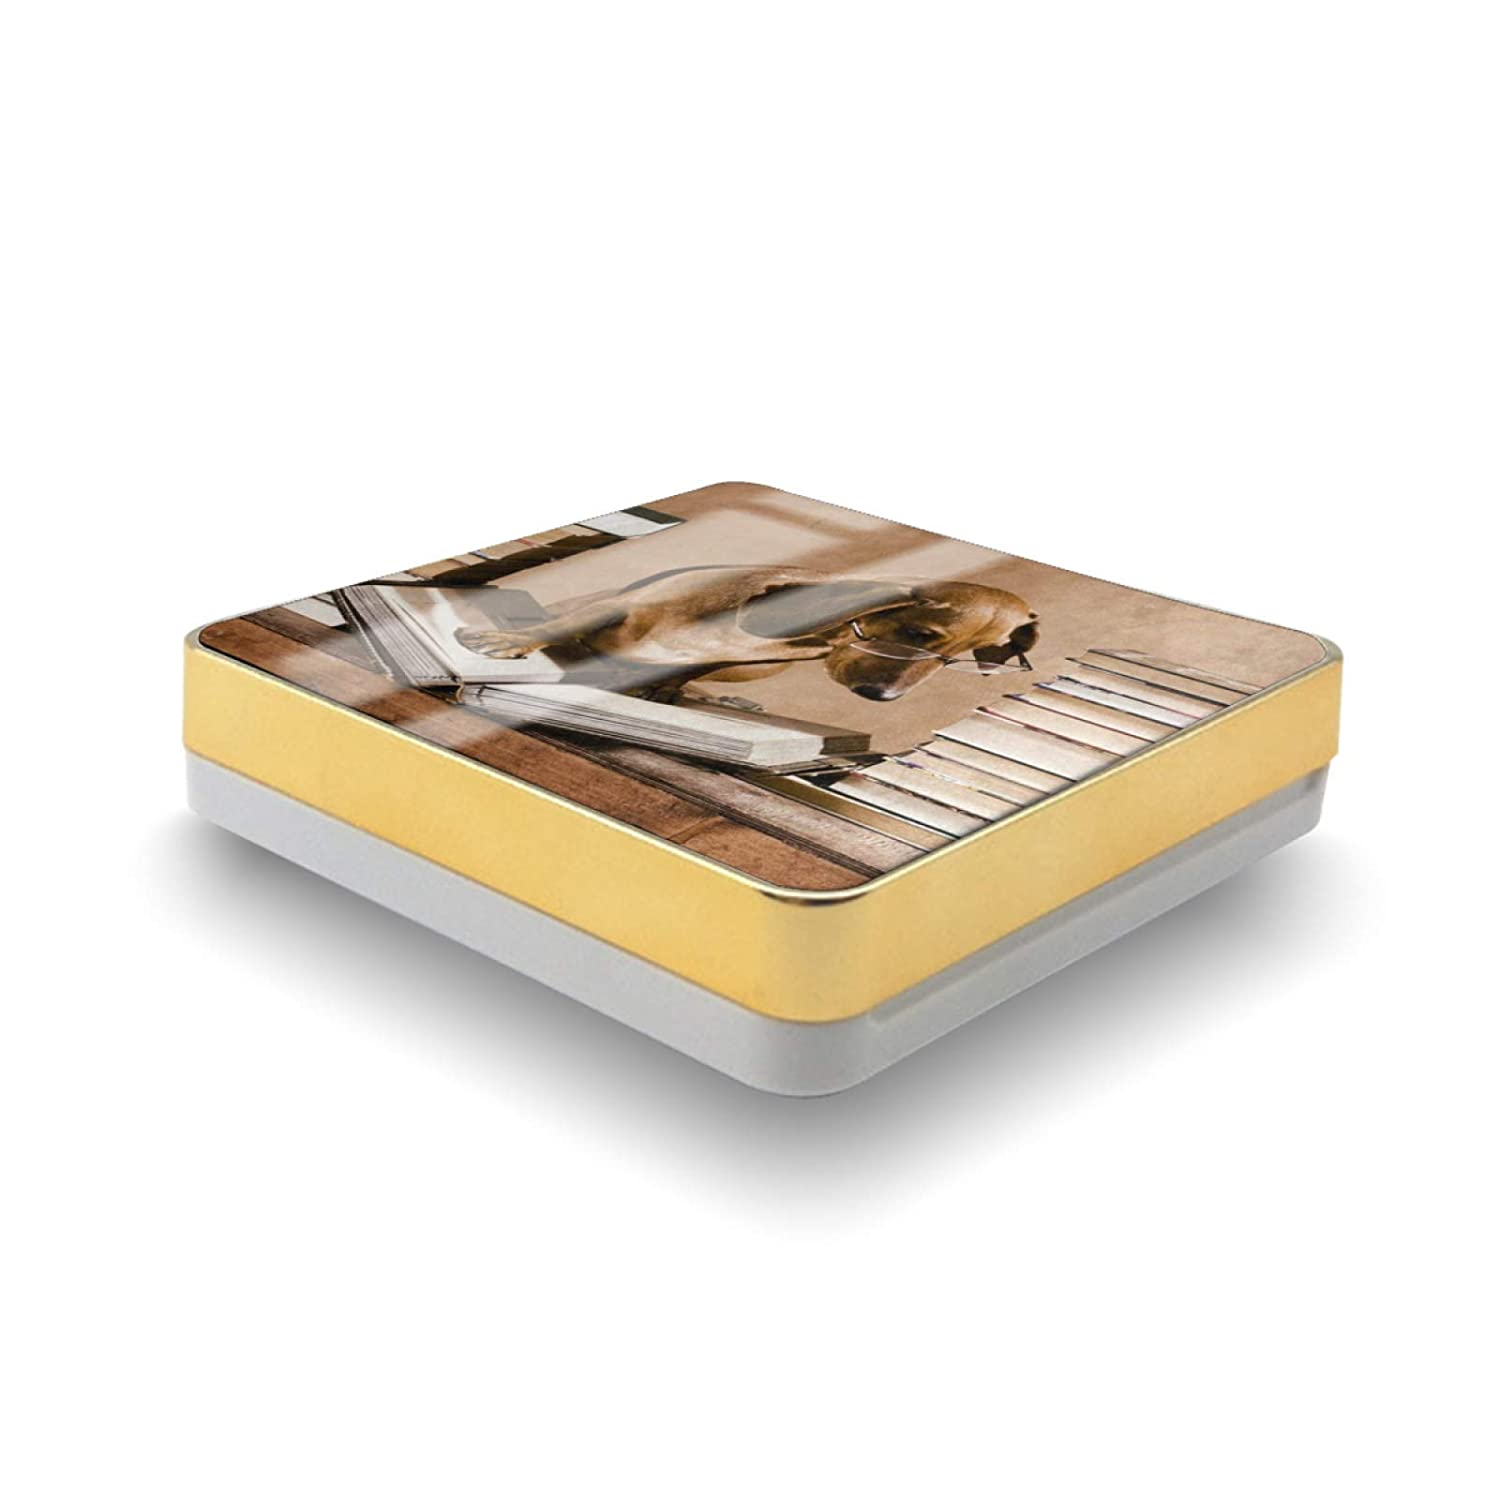 Cosmetic Container Wise Dachshund Dog Professor reading Book Air Cushion Powder Puff Case Holder With Powder Puff Sponge And Mirror Portable Make-Up Foundation Bb Cream Box Storage 15g